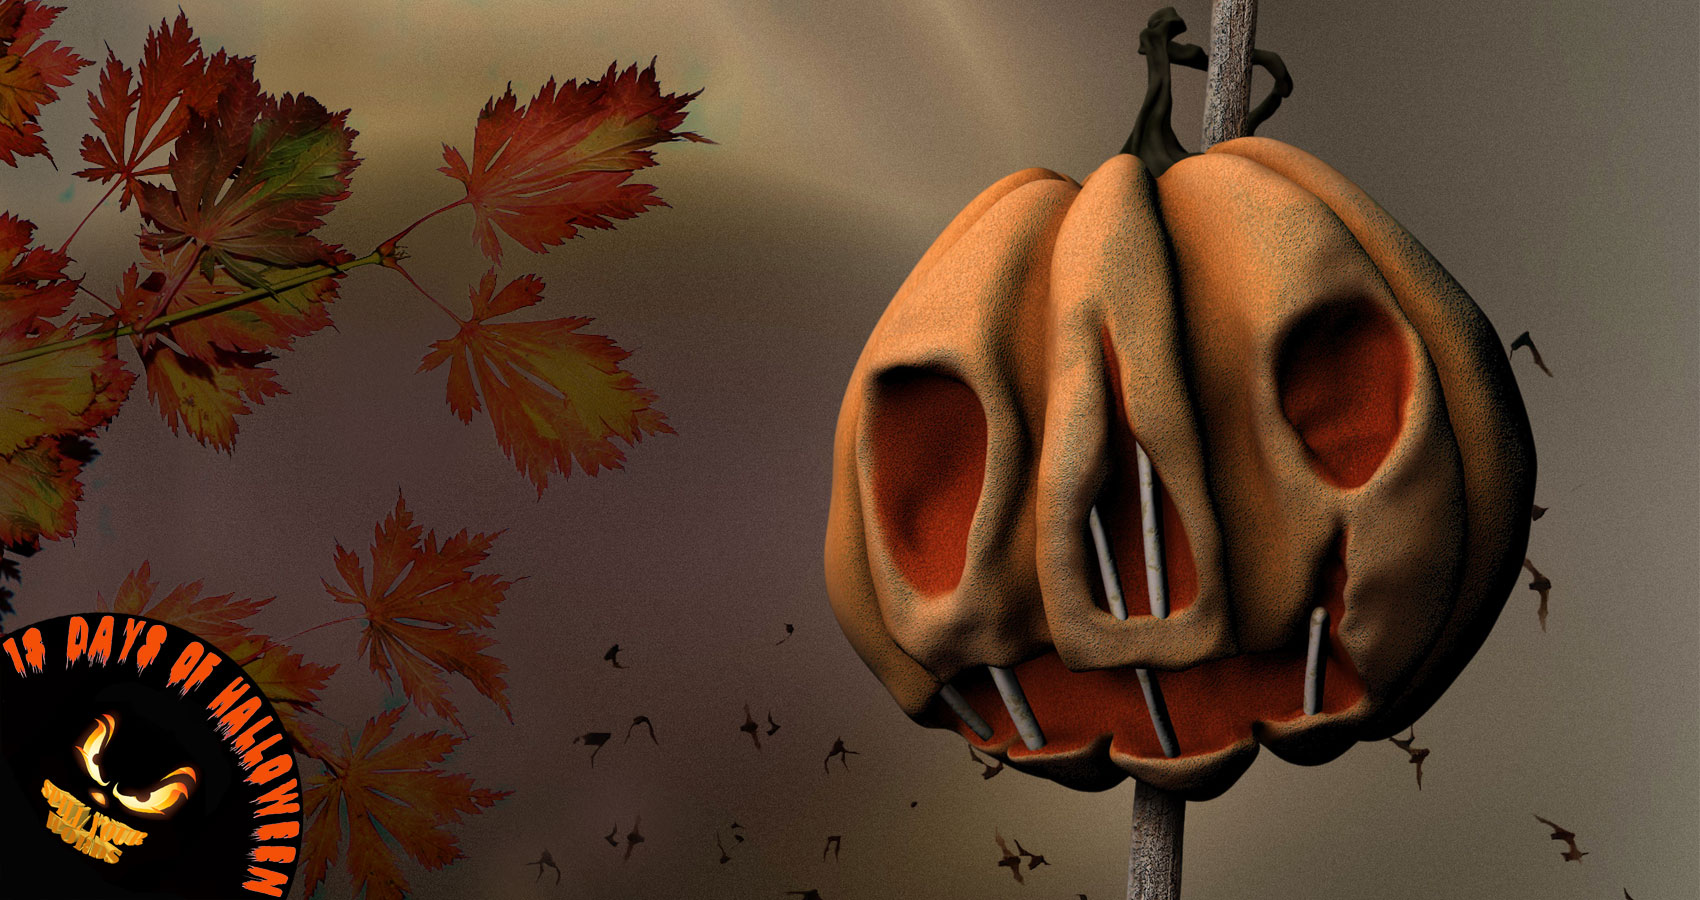 Halloween Essence, written by Phyllis P. Colucci at Spillwords.com